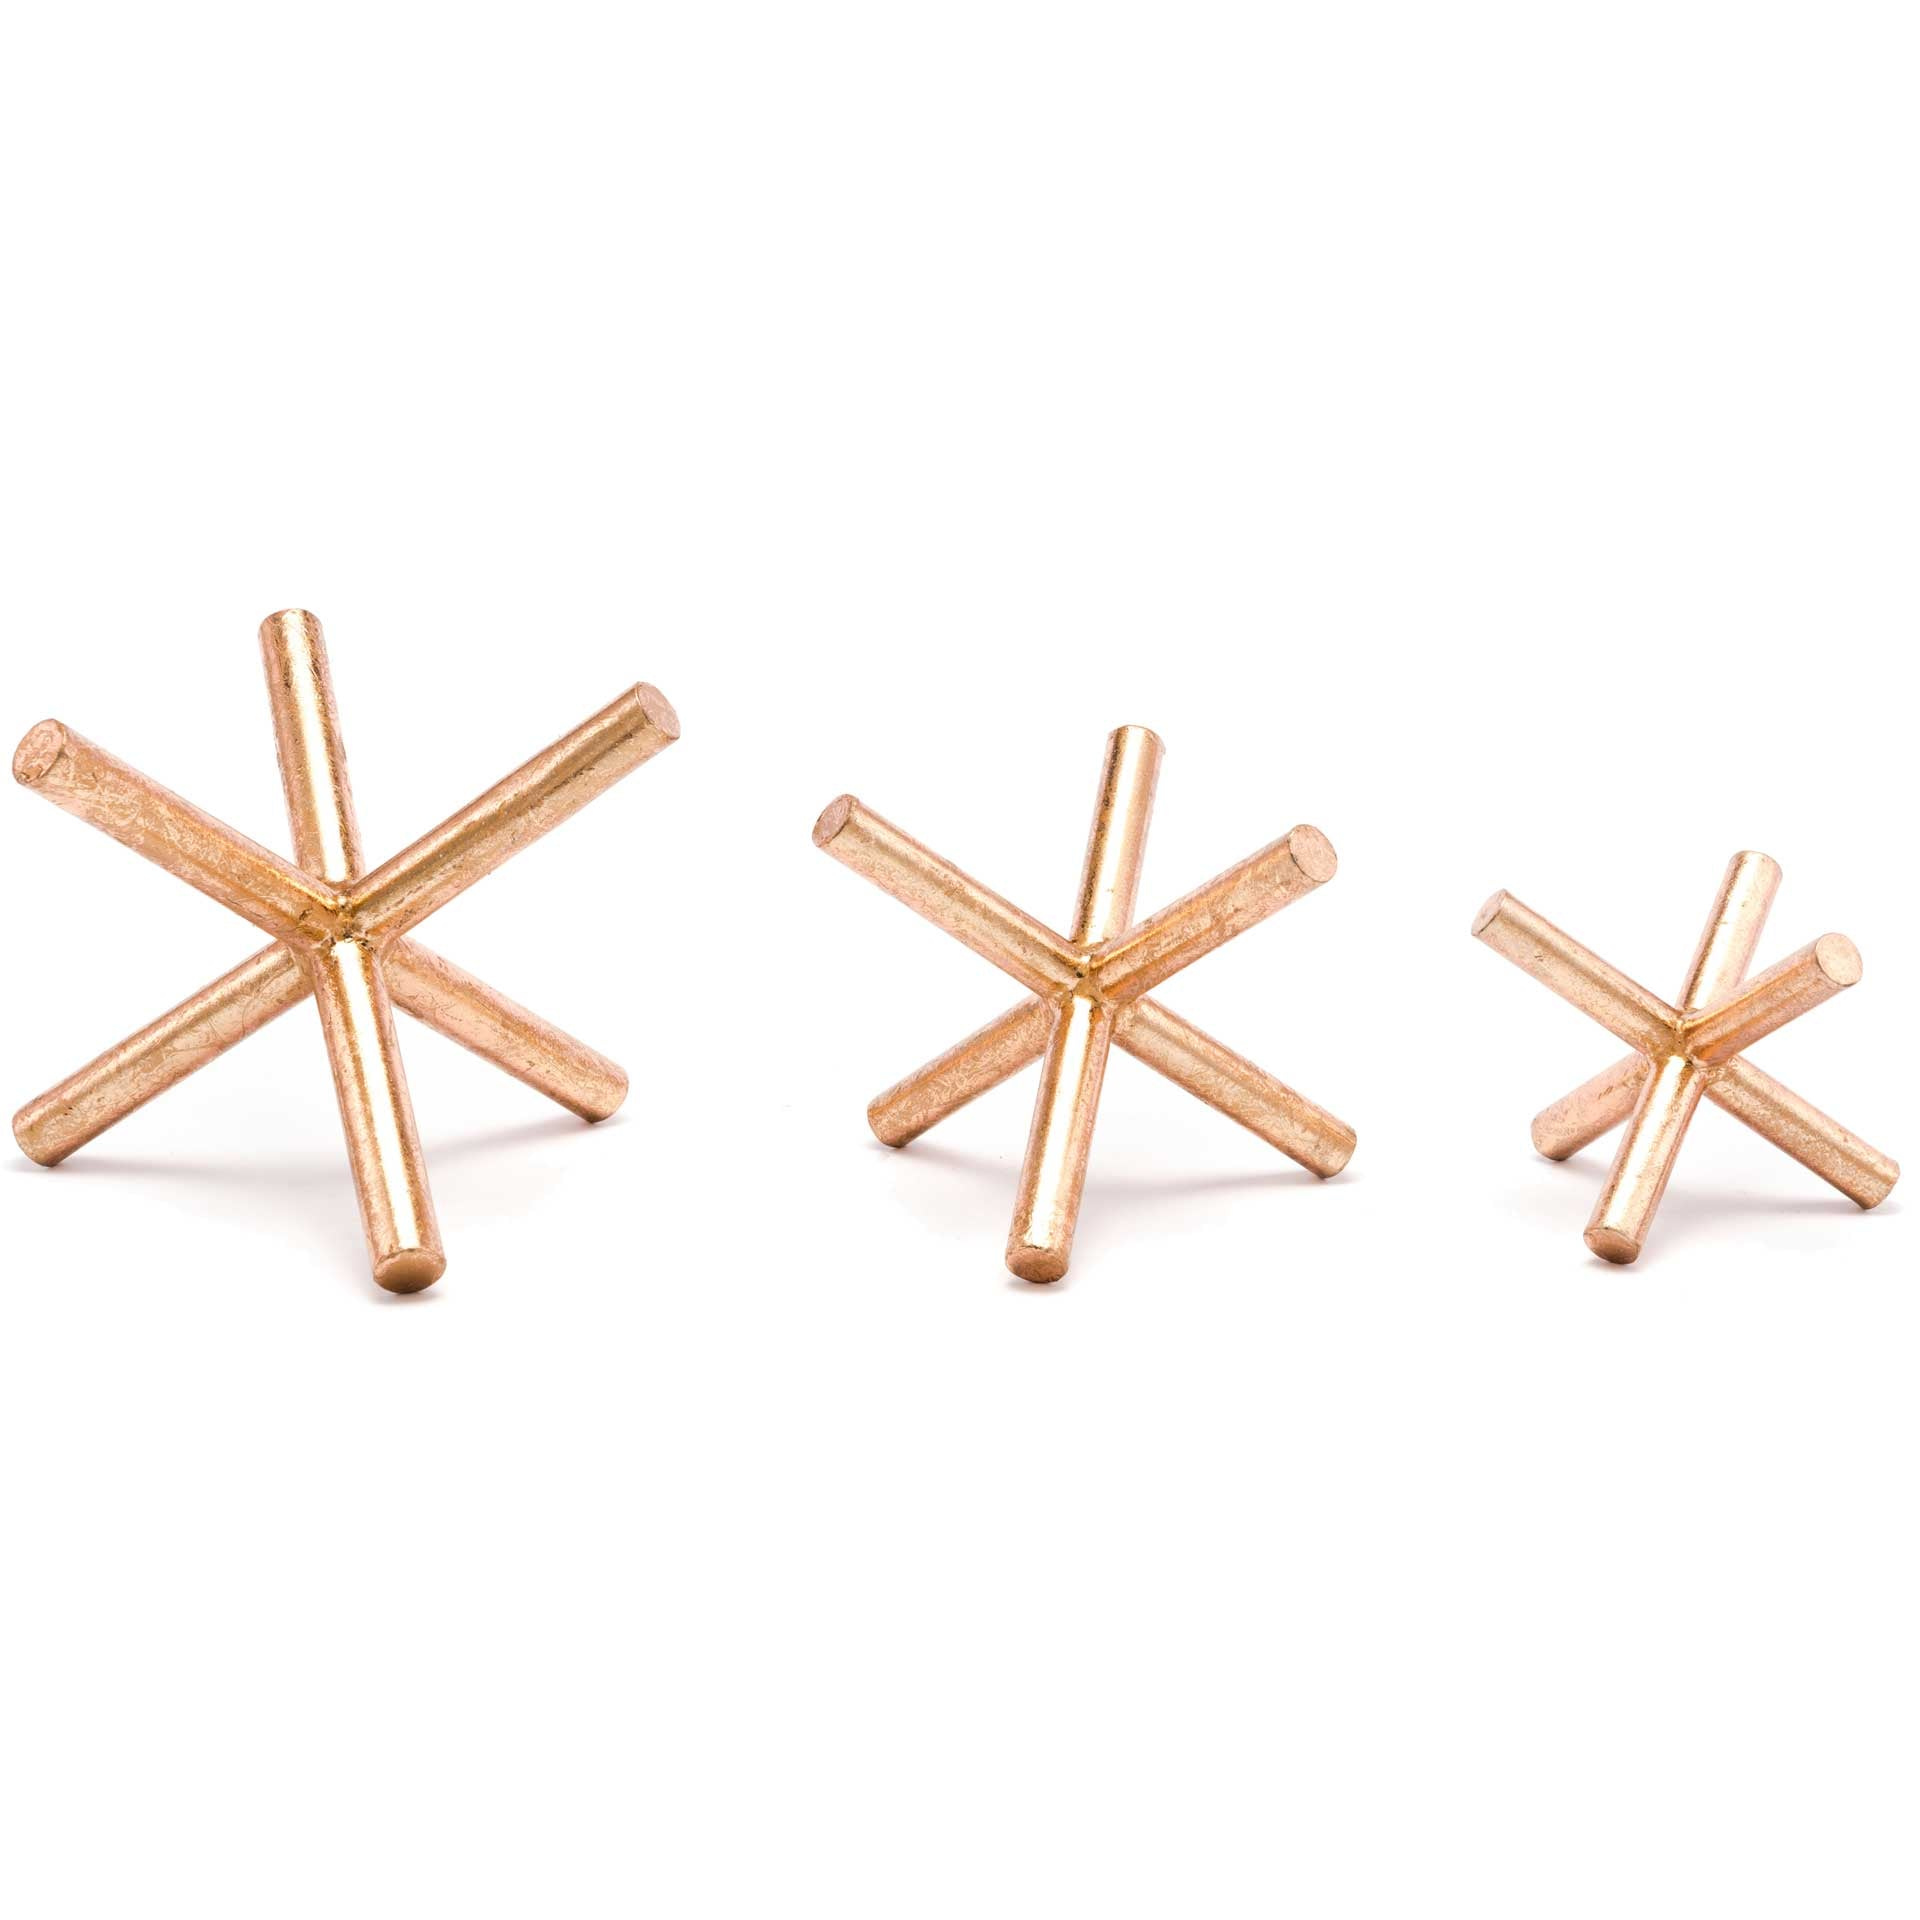 Asterix Decor Copper (Set of 3)